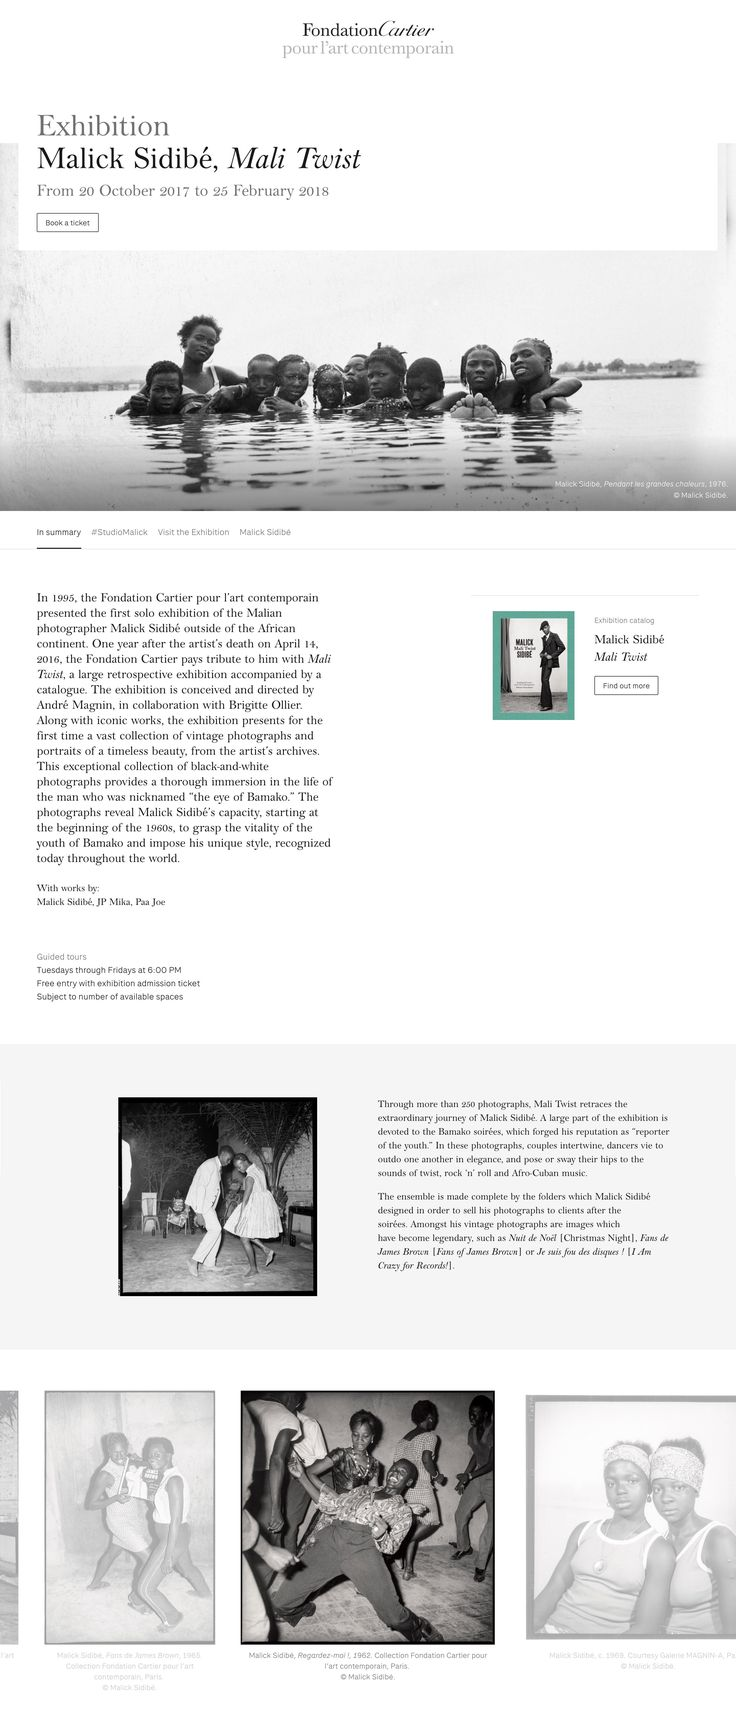 Design of exhibition page - Fondation Cartier